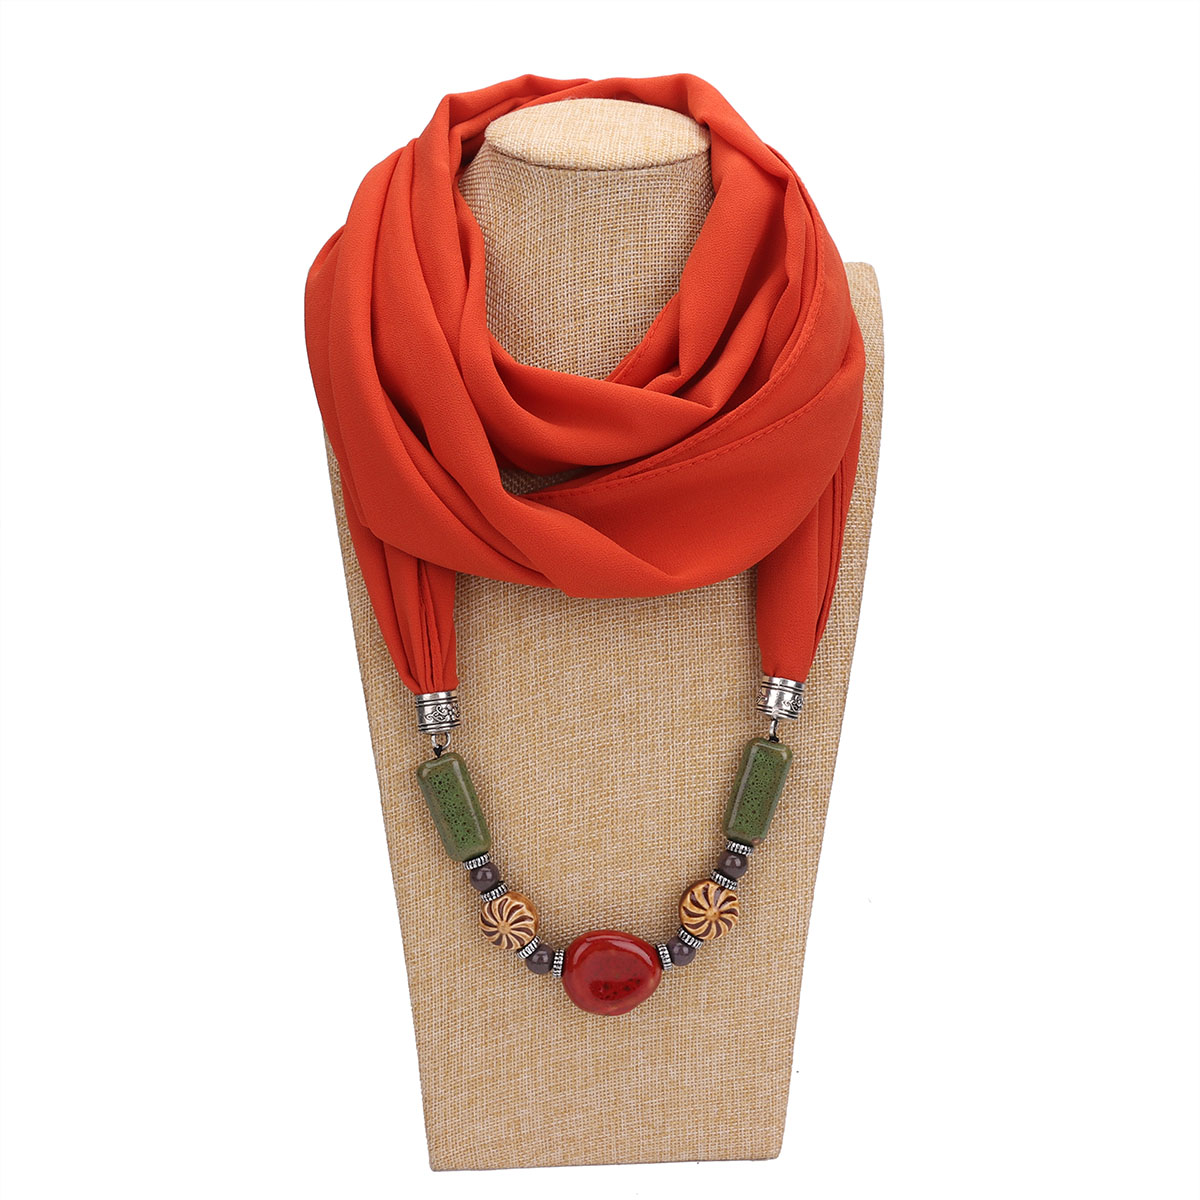 Fashion Voile Jewelry Tassel Necklace Silk Scarf Beaded Scarf Women's Cotton Scarf Headscarf Free Shipping